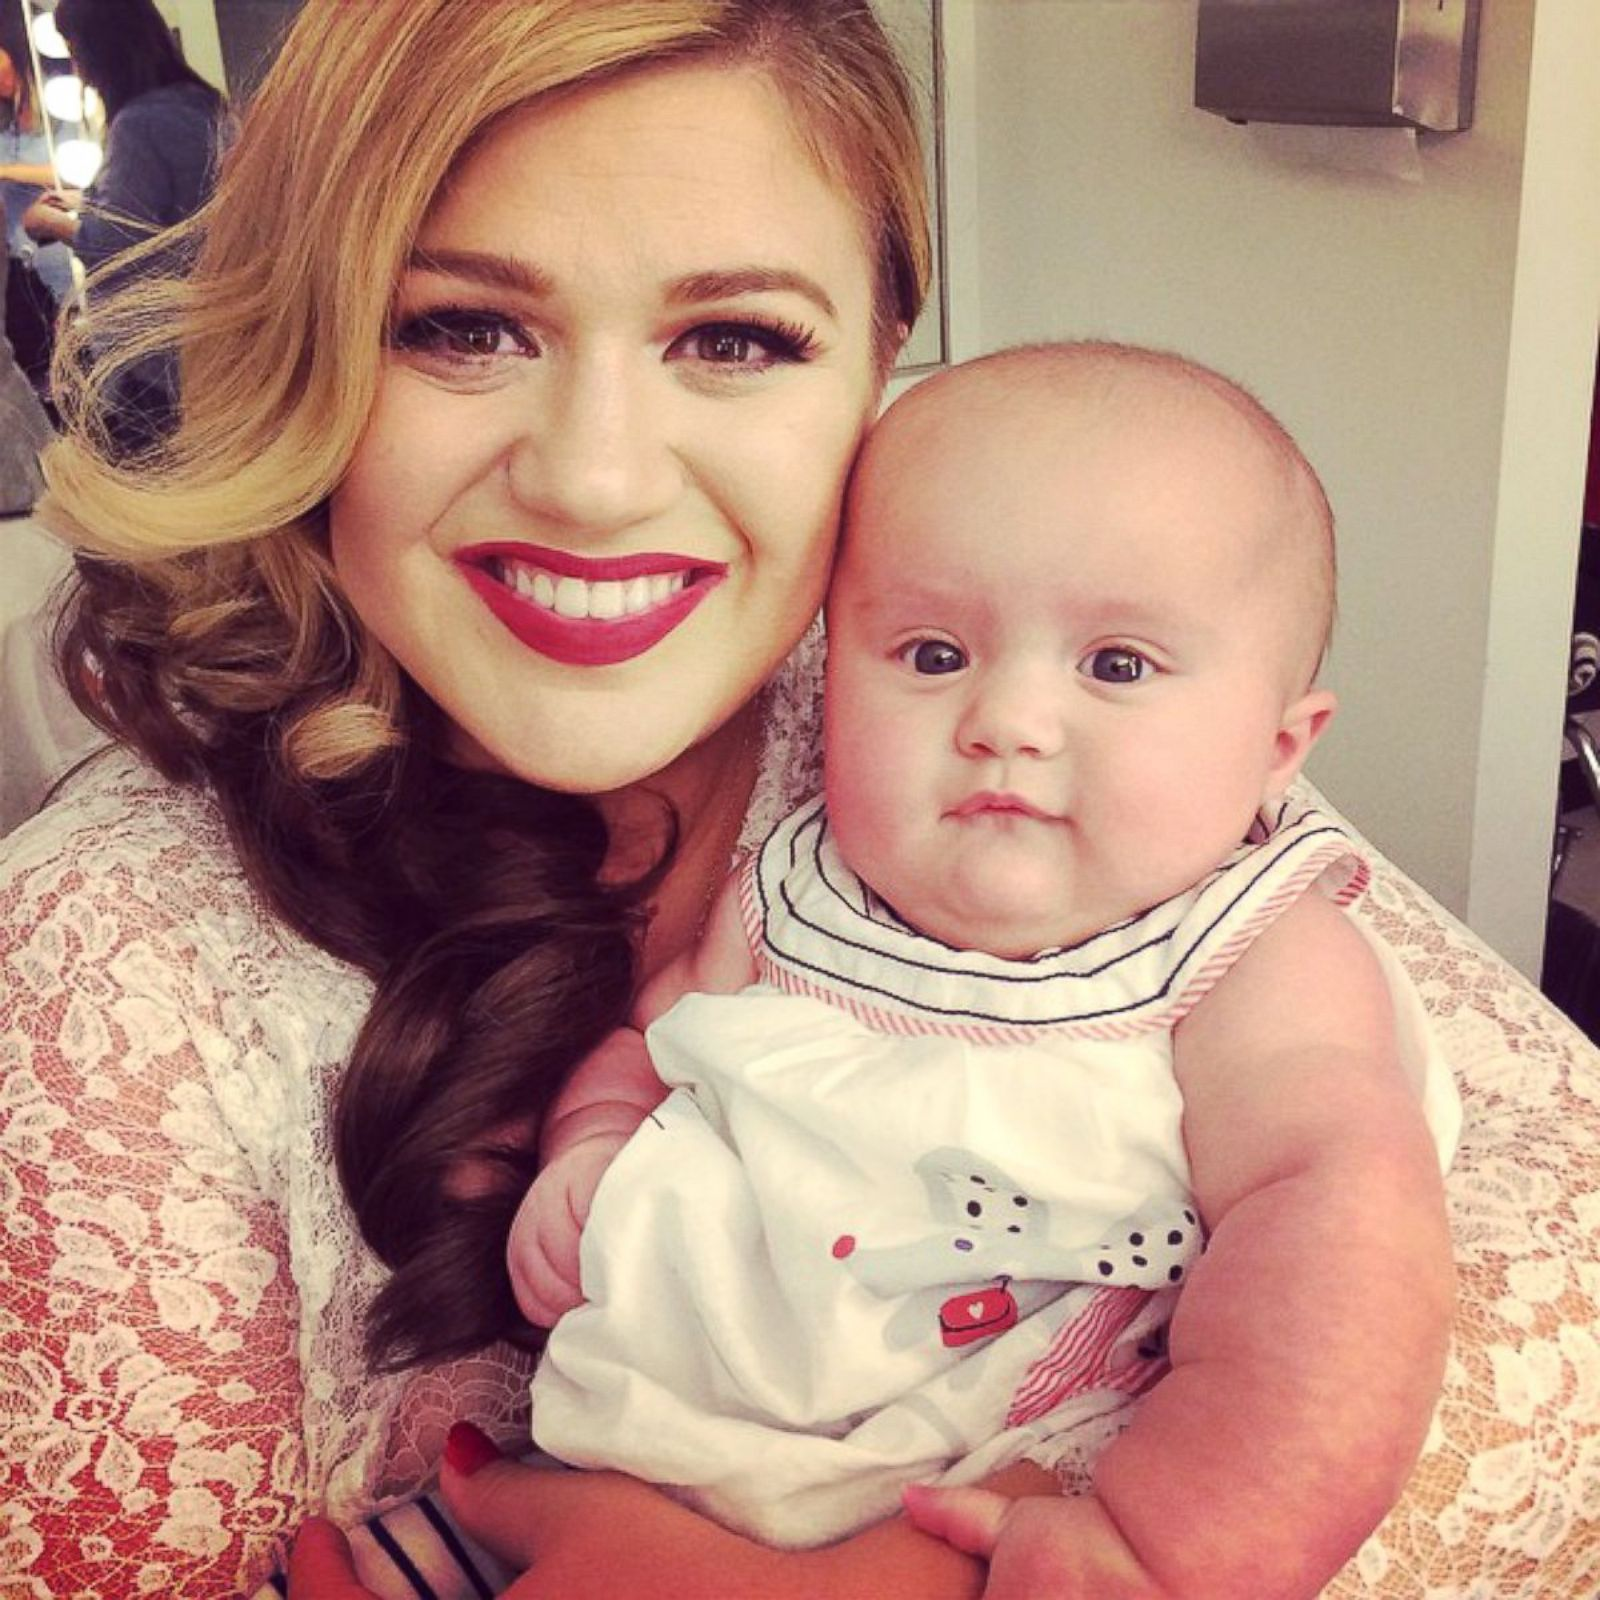 Kelly clarkson s daughter river is growing up picture hollywood s